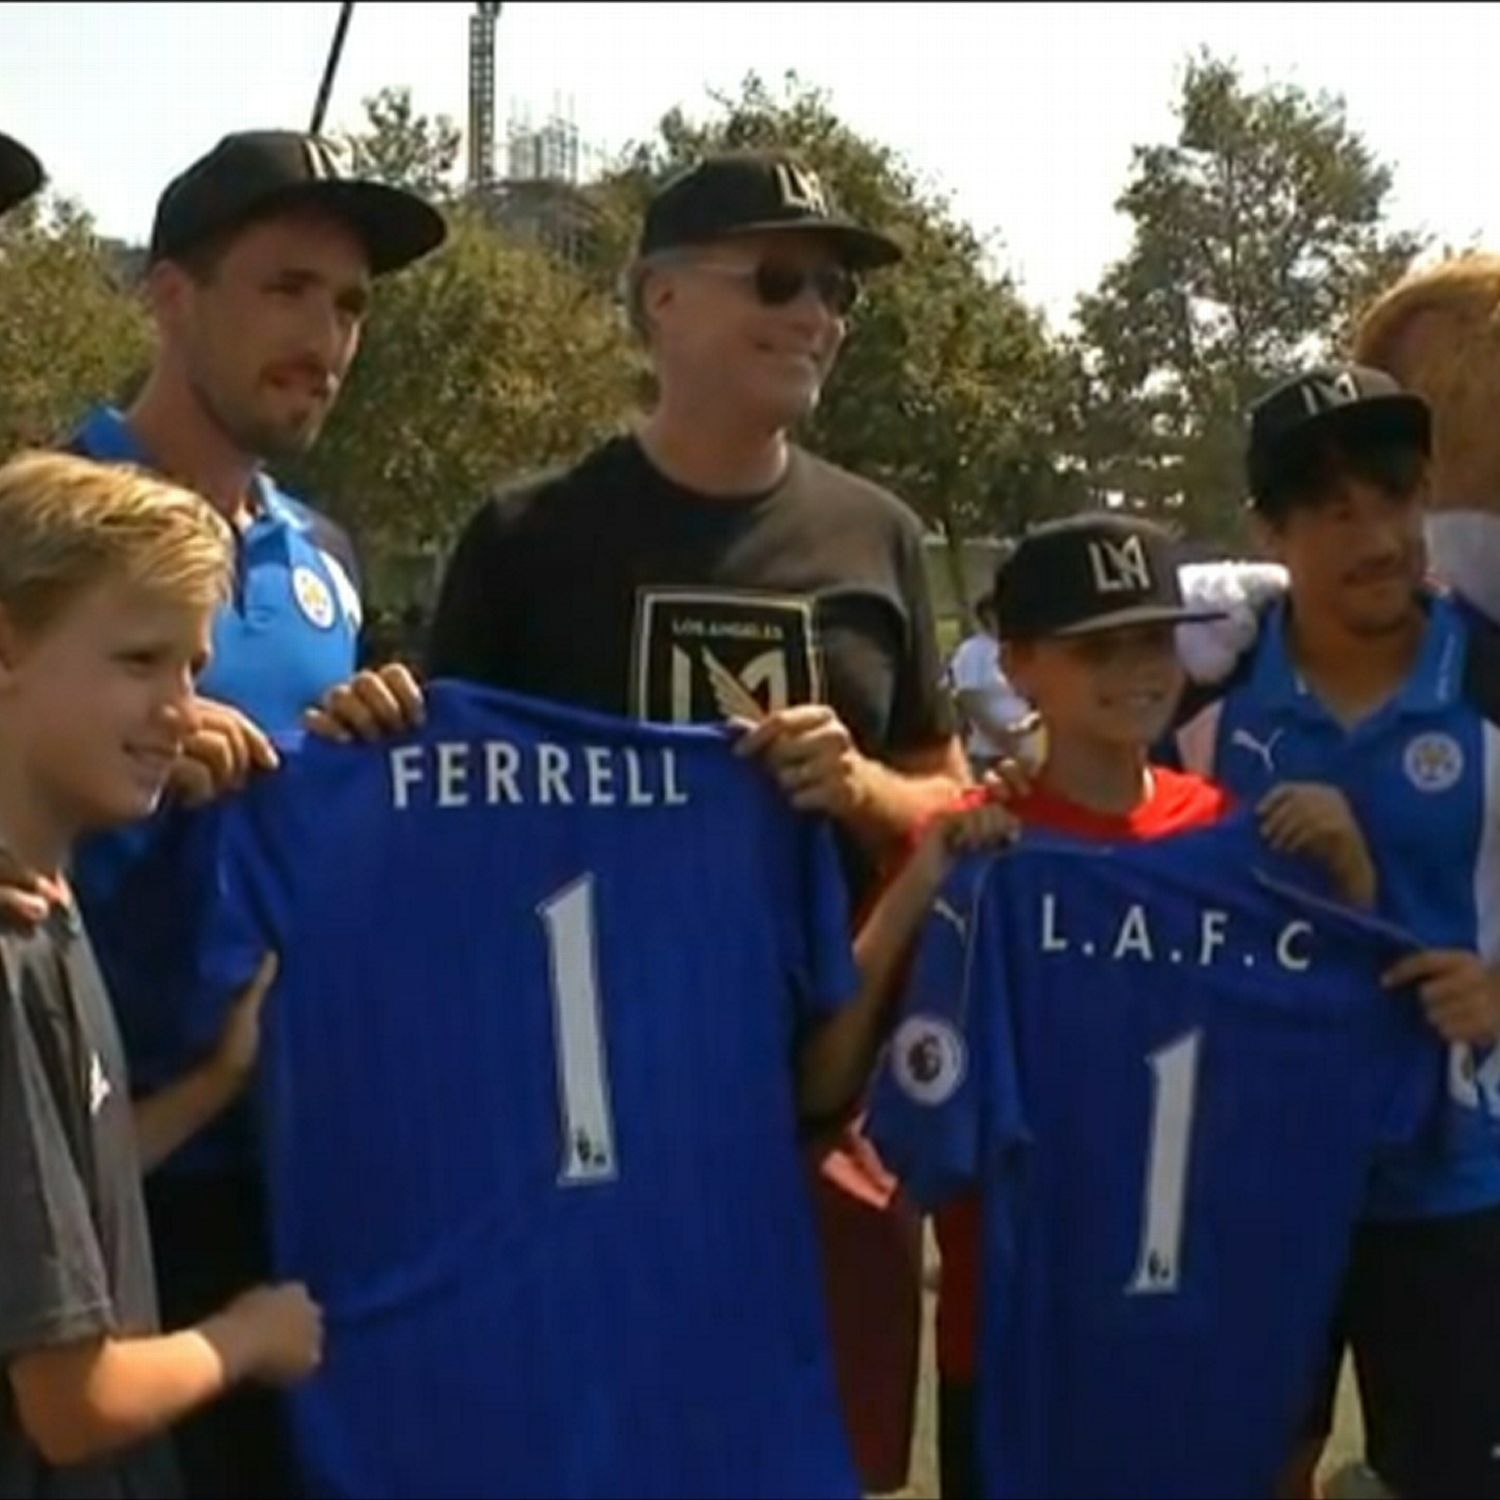 WATCH: Will Ferrell meets Leicester